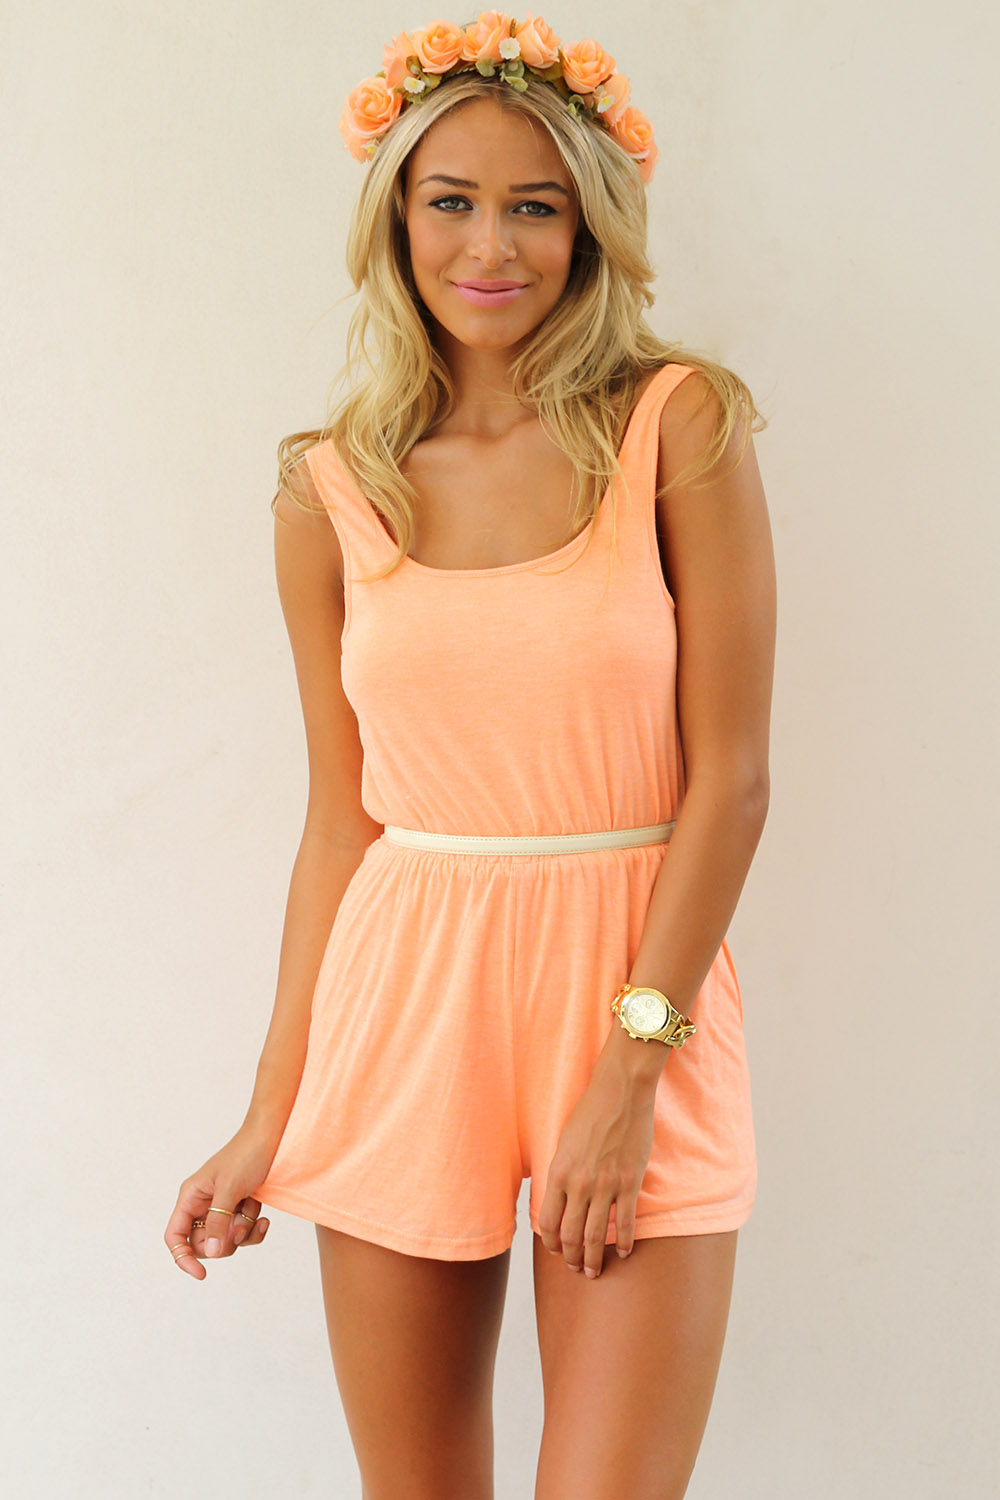 Orange Jump Suits/Rompers - Peach Sleeveless Mini Playsuit with | UsTrendy